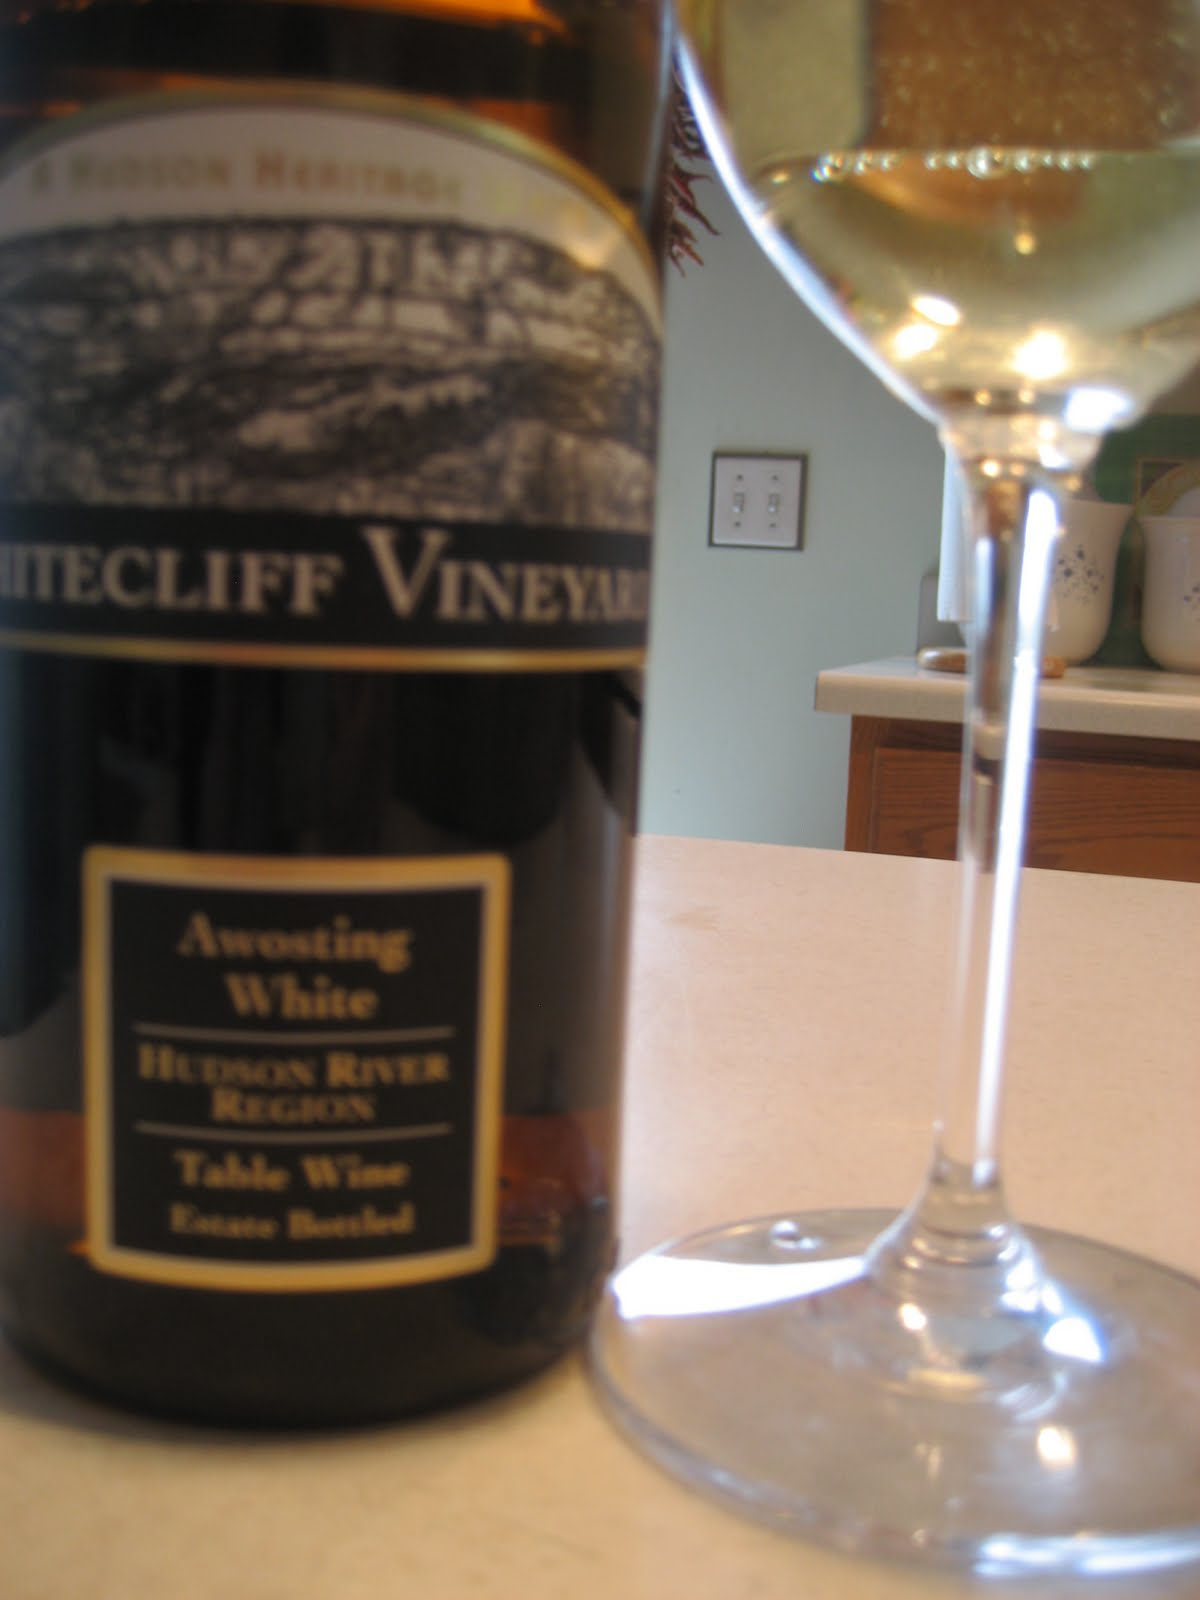 Hudson Valley Wine Goddess Whitecliff 2010 Awosting White